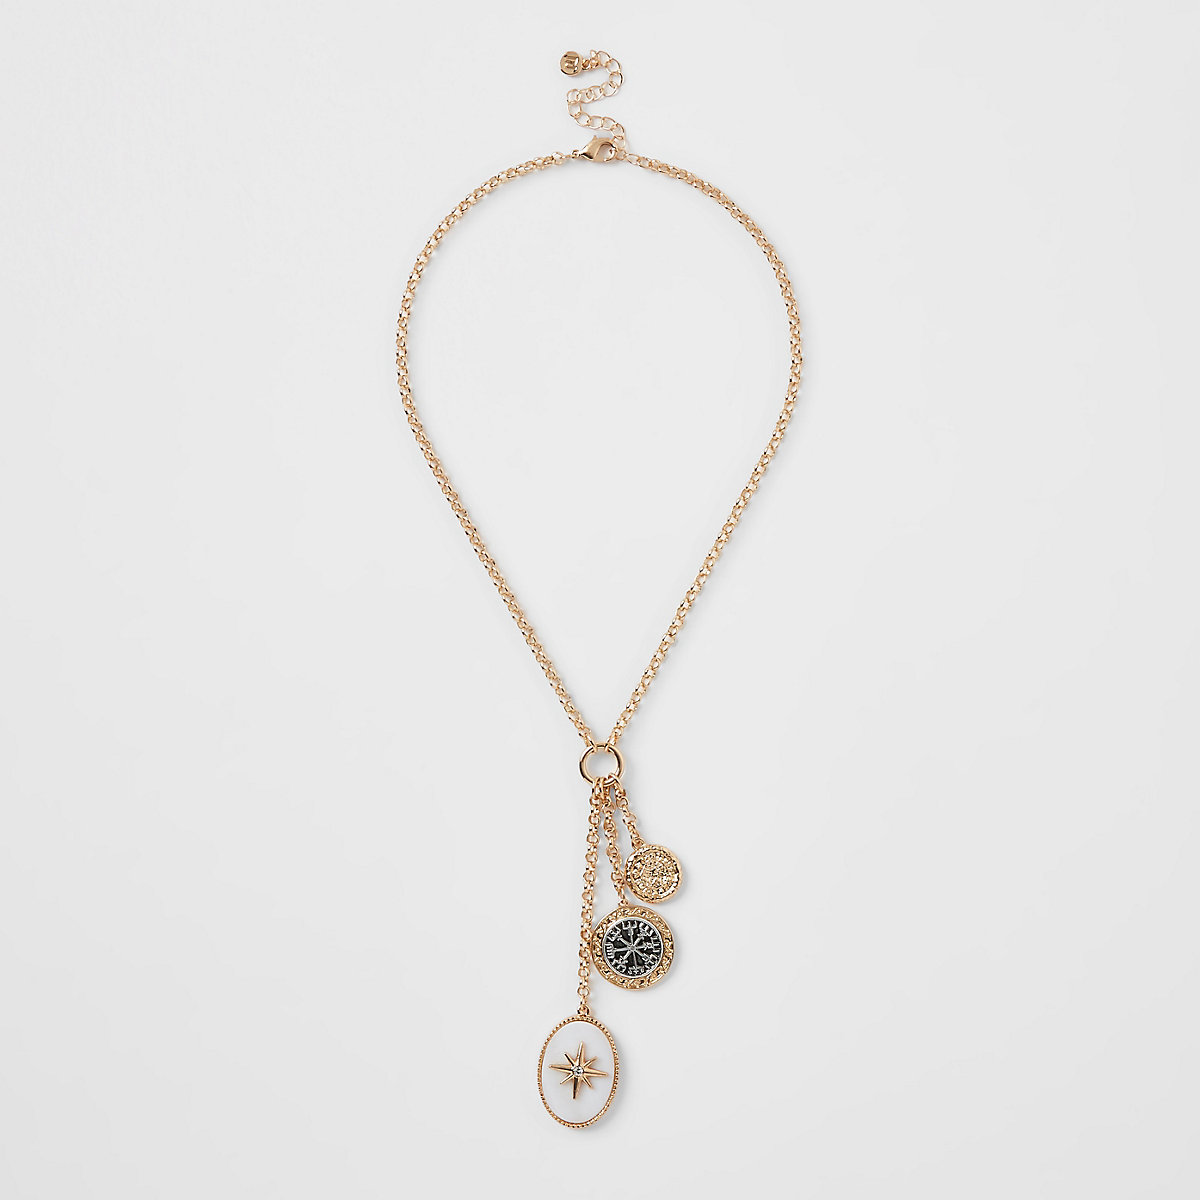 Gold color oval pendant necklace